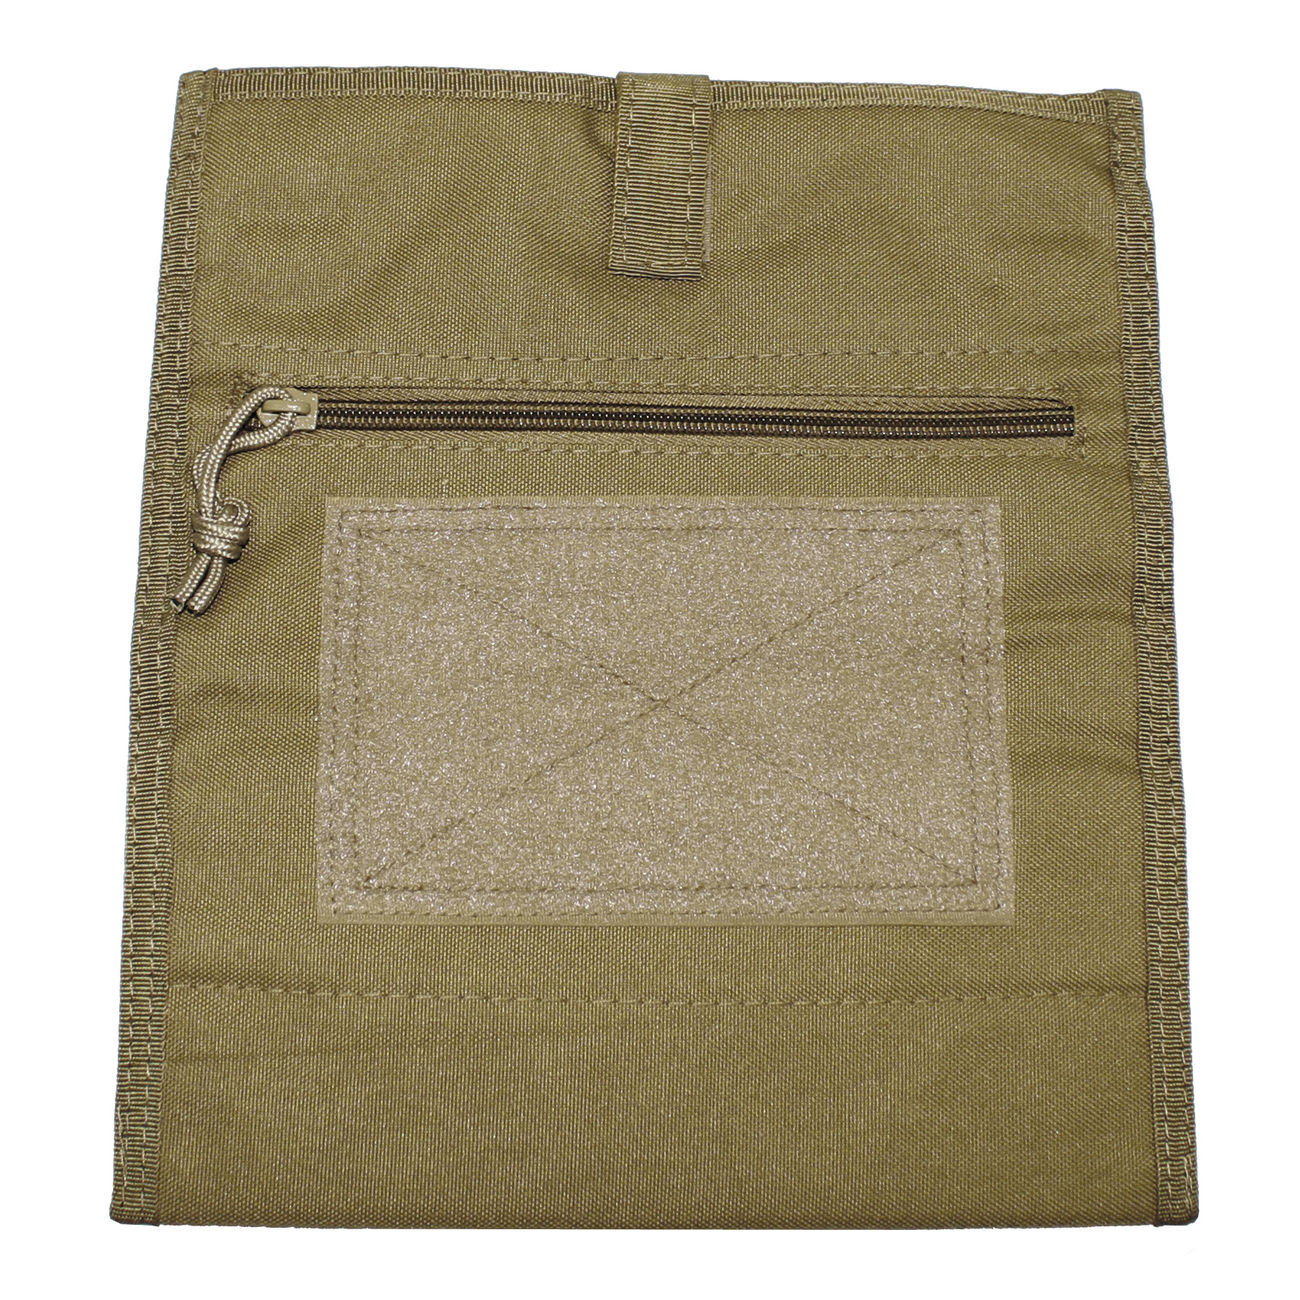 MFH Tasche Tablet PC coyote tan 0